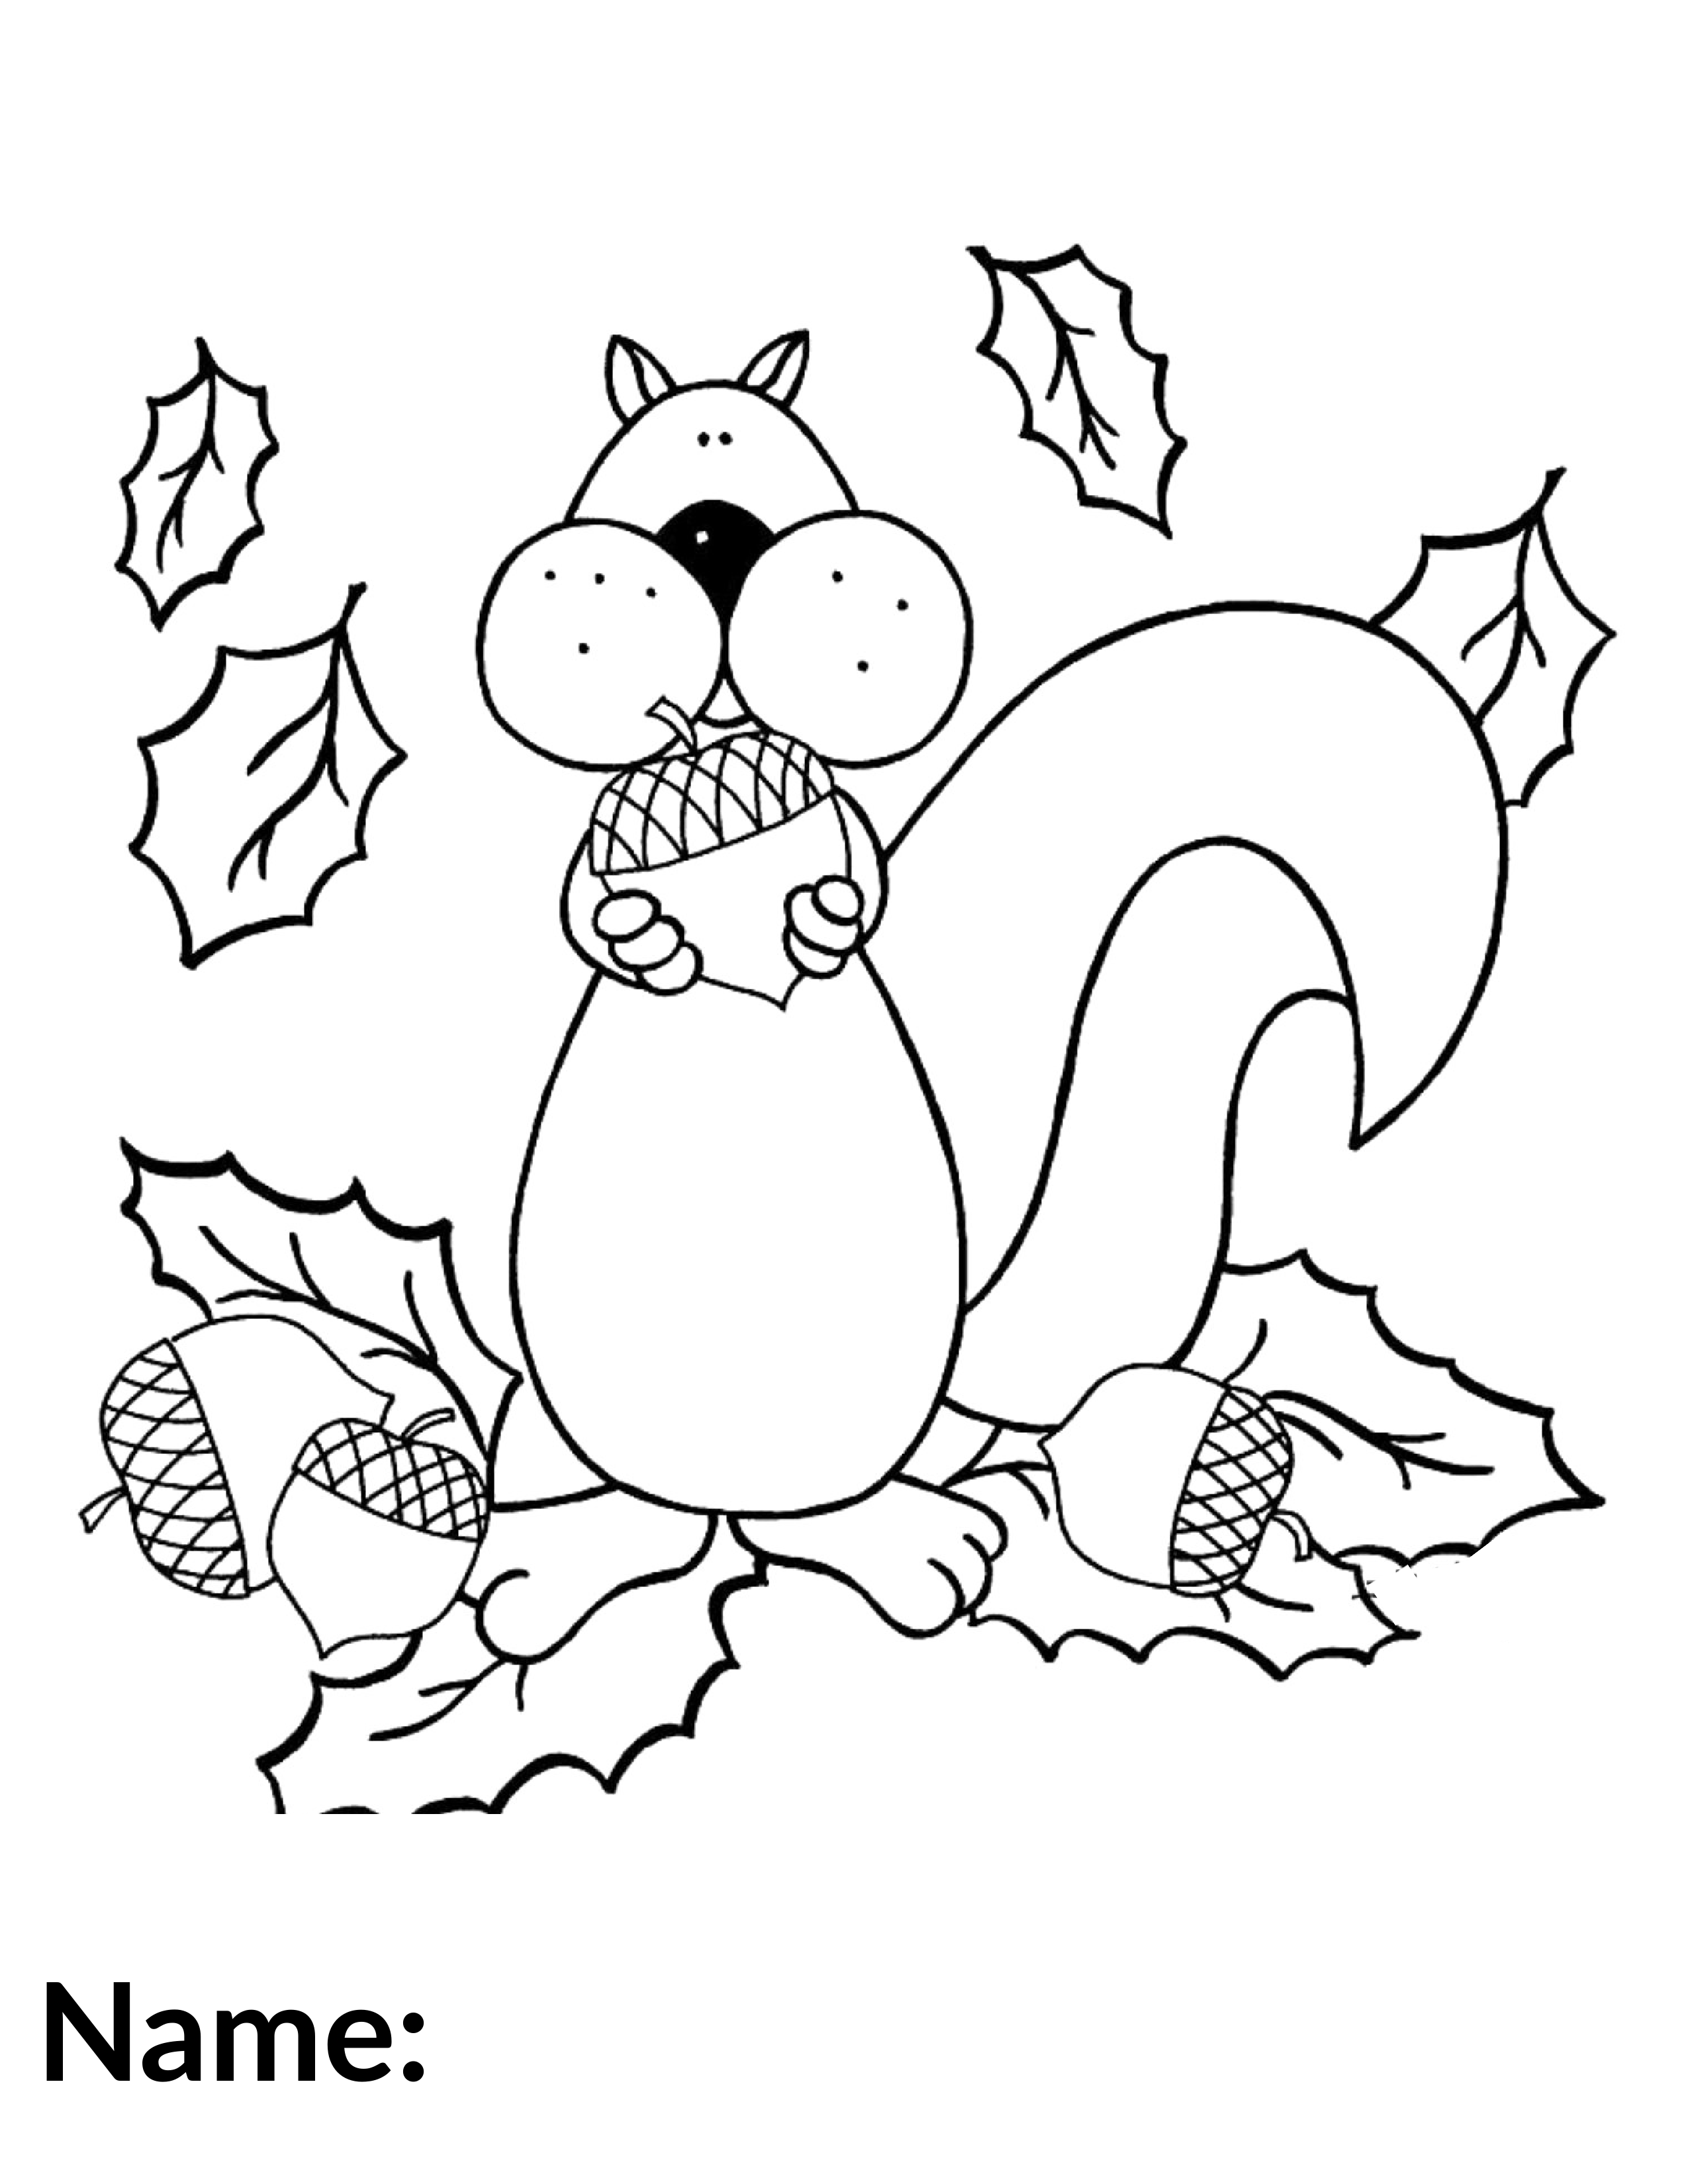 2020 Squirrel - Coloring Contest